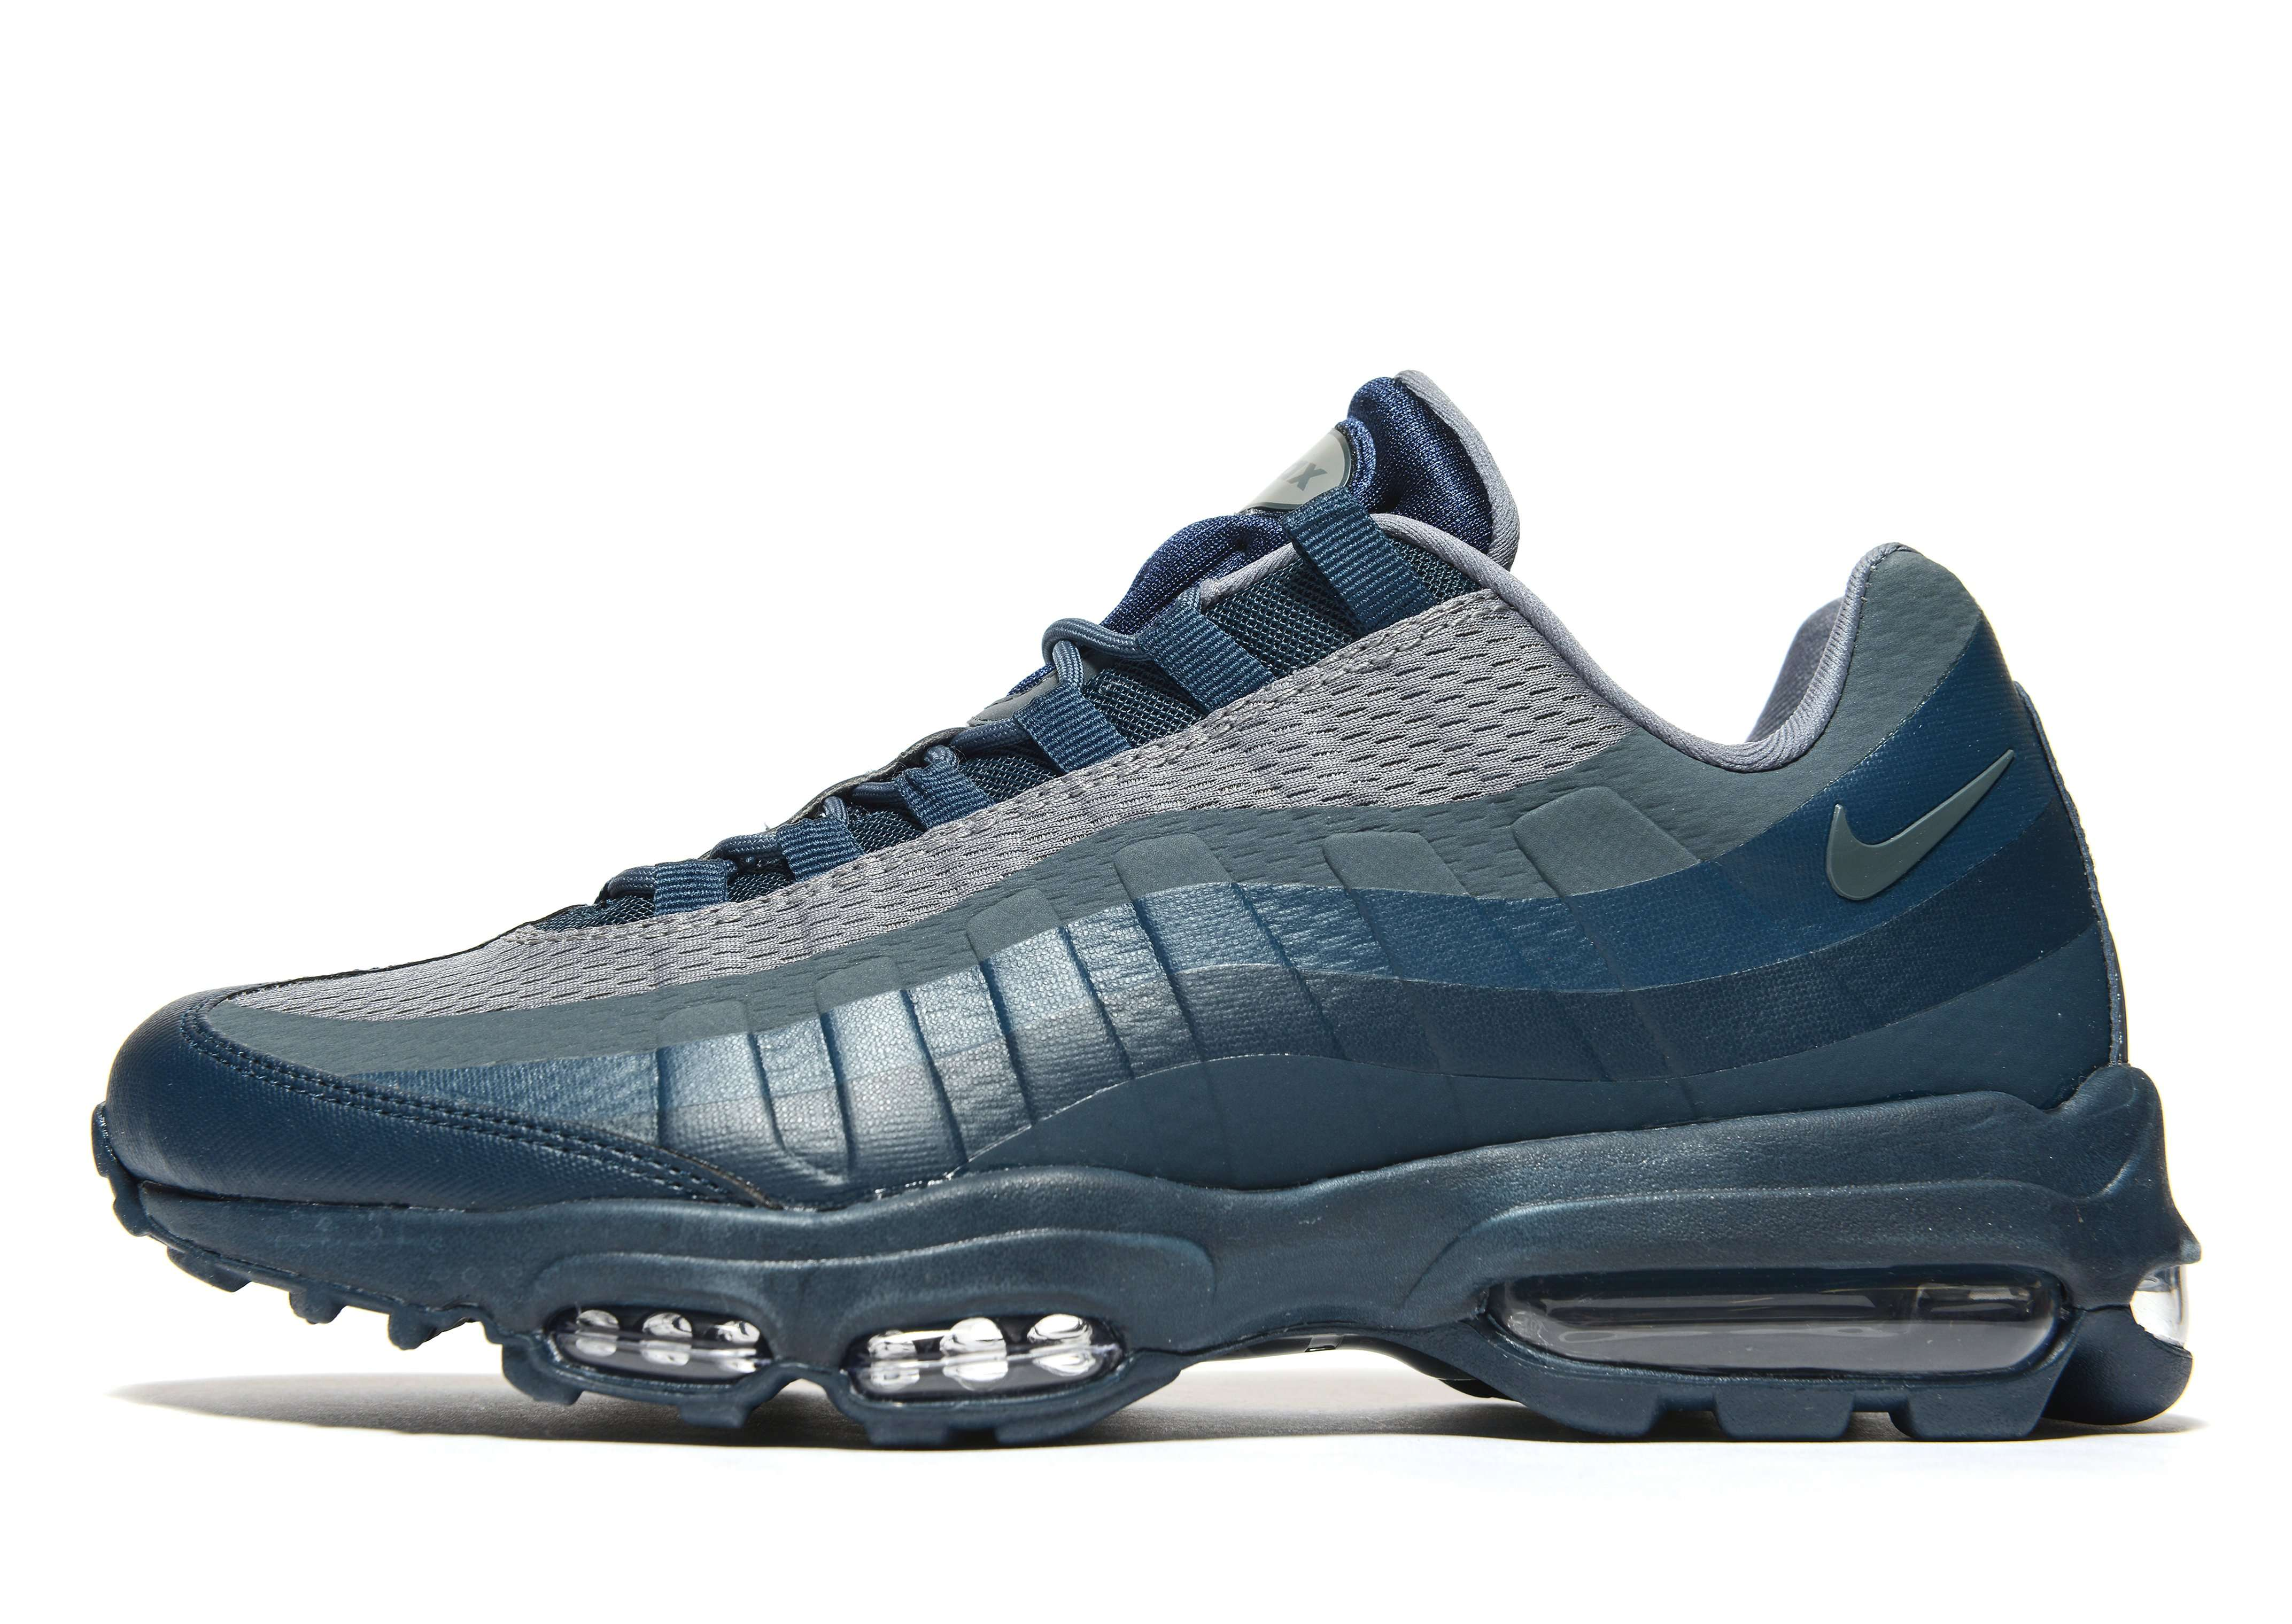 nike air max 95 ultra essential jd sports. Black Bedroom Furniture Sets. Home Design Ideas